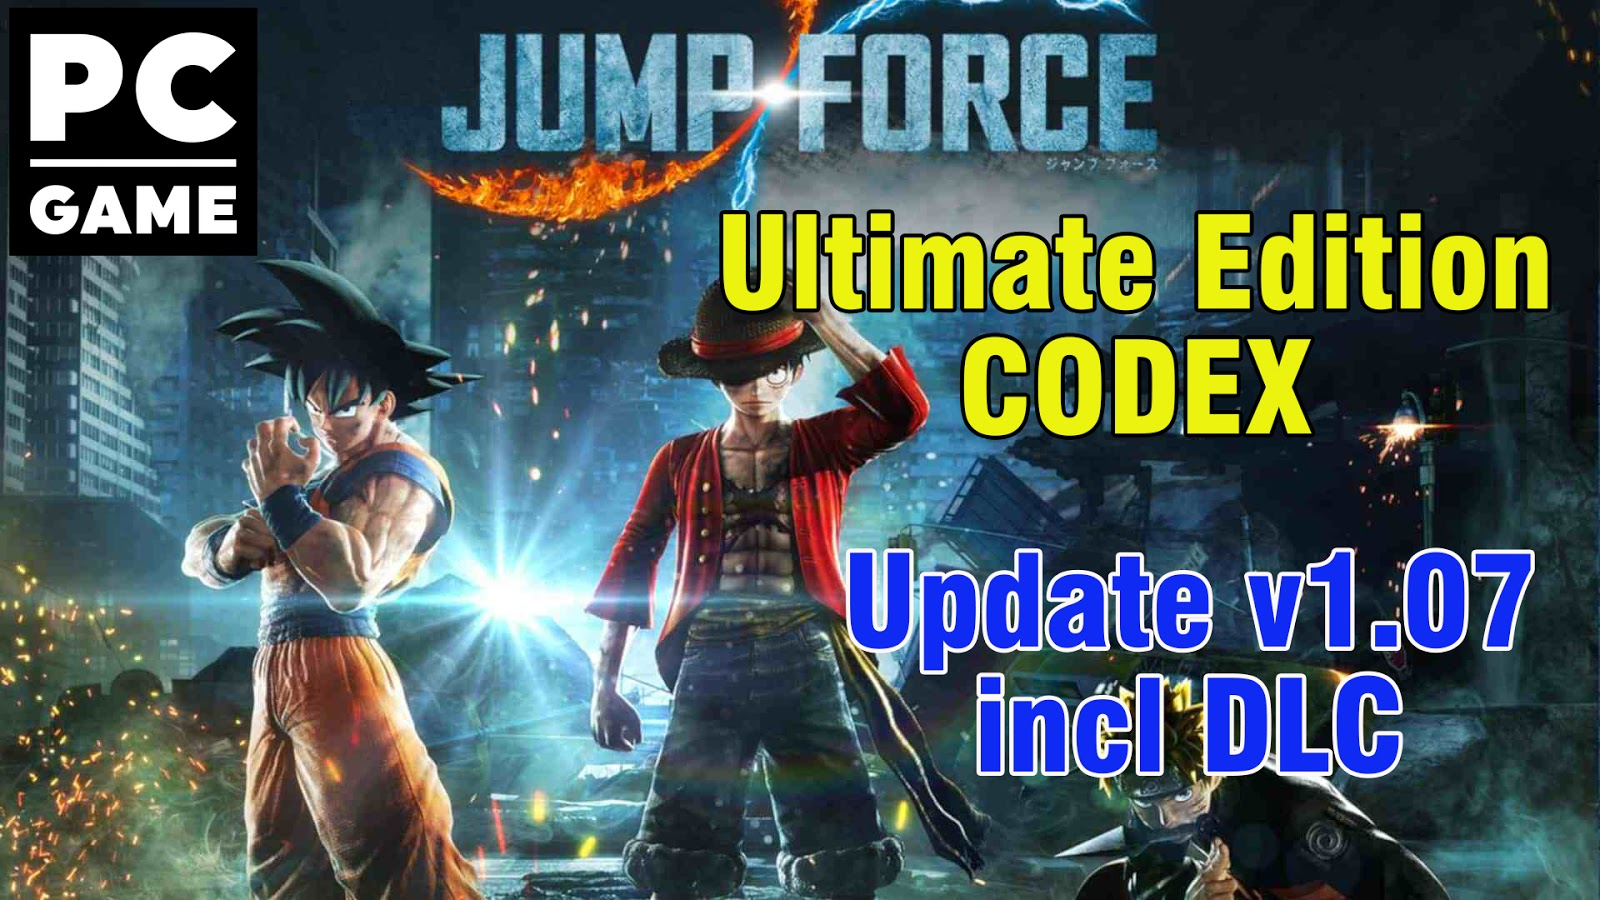 JUMP FORCE Ultimate Edition-CODEX + Update v1.07 incl DLC [Download PC Game] (100% Working)